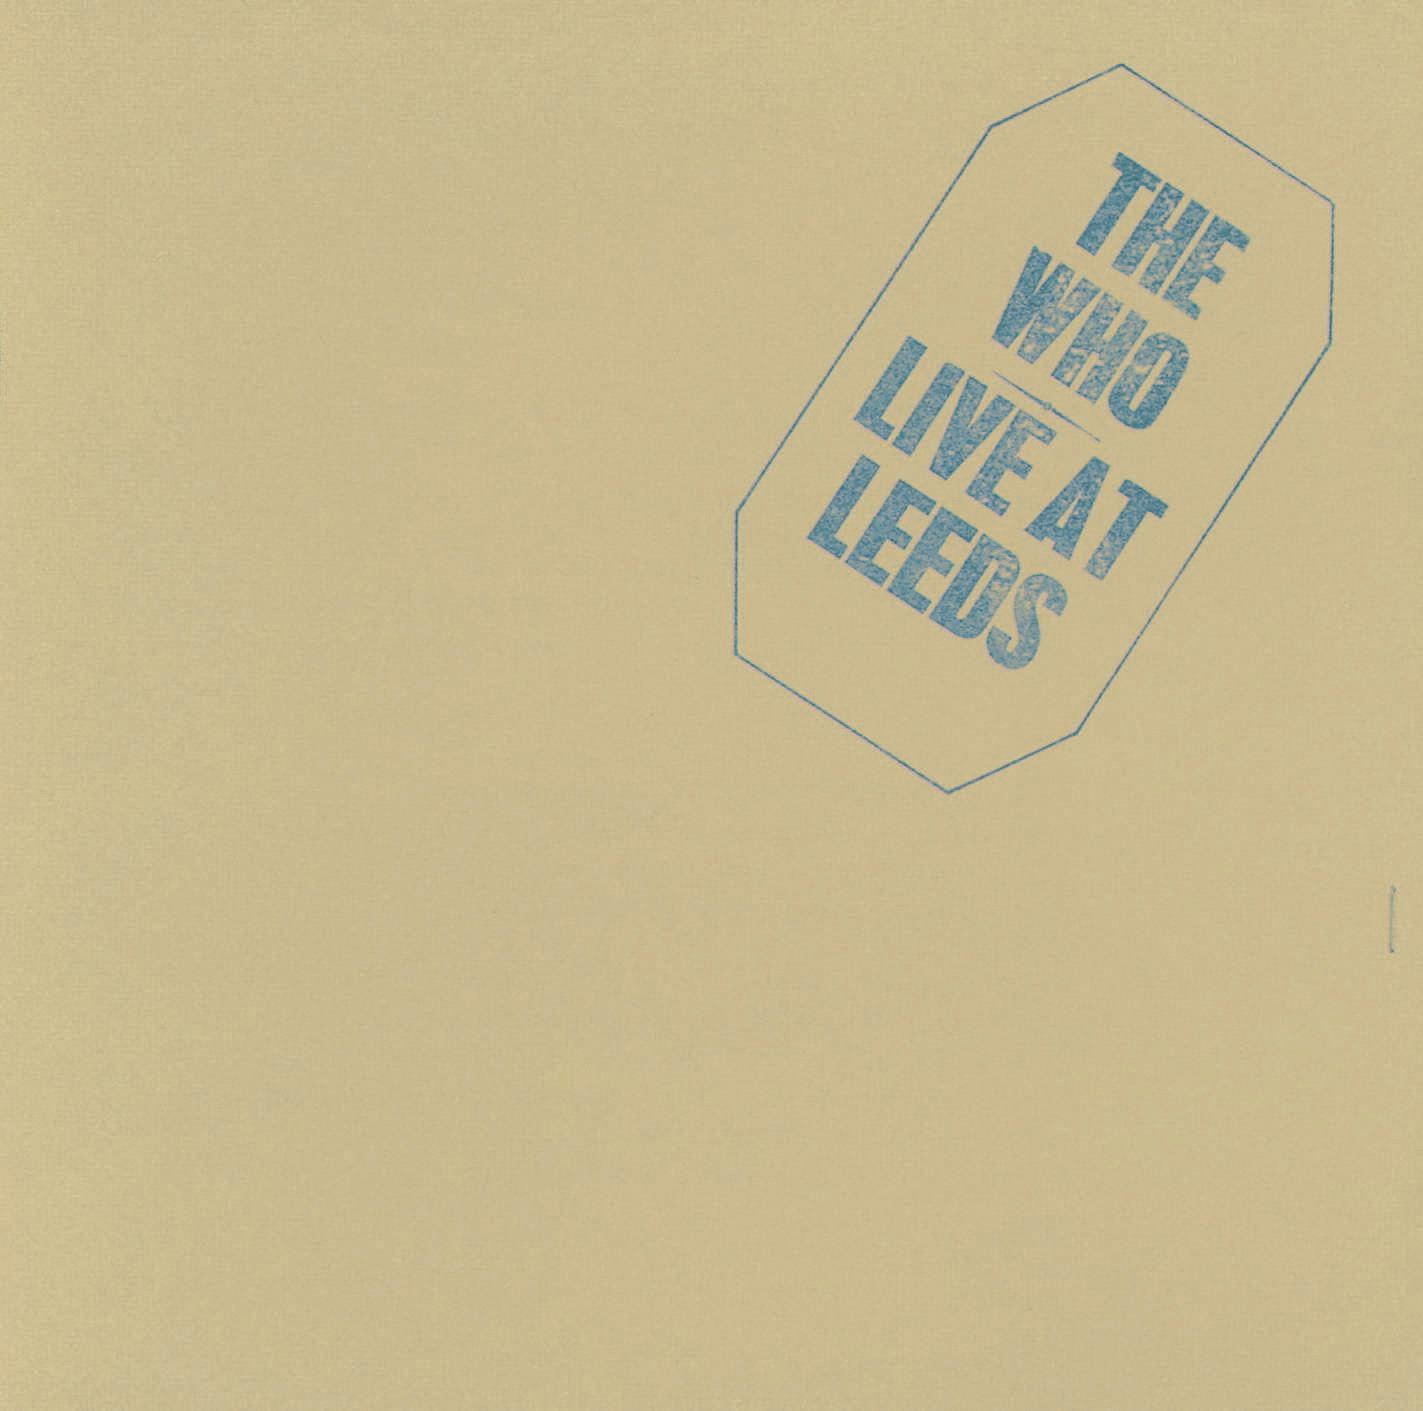 The Who Live at Leeds (1970) Vinyl